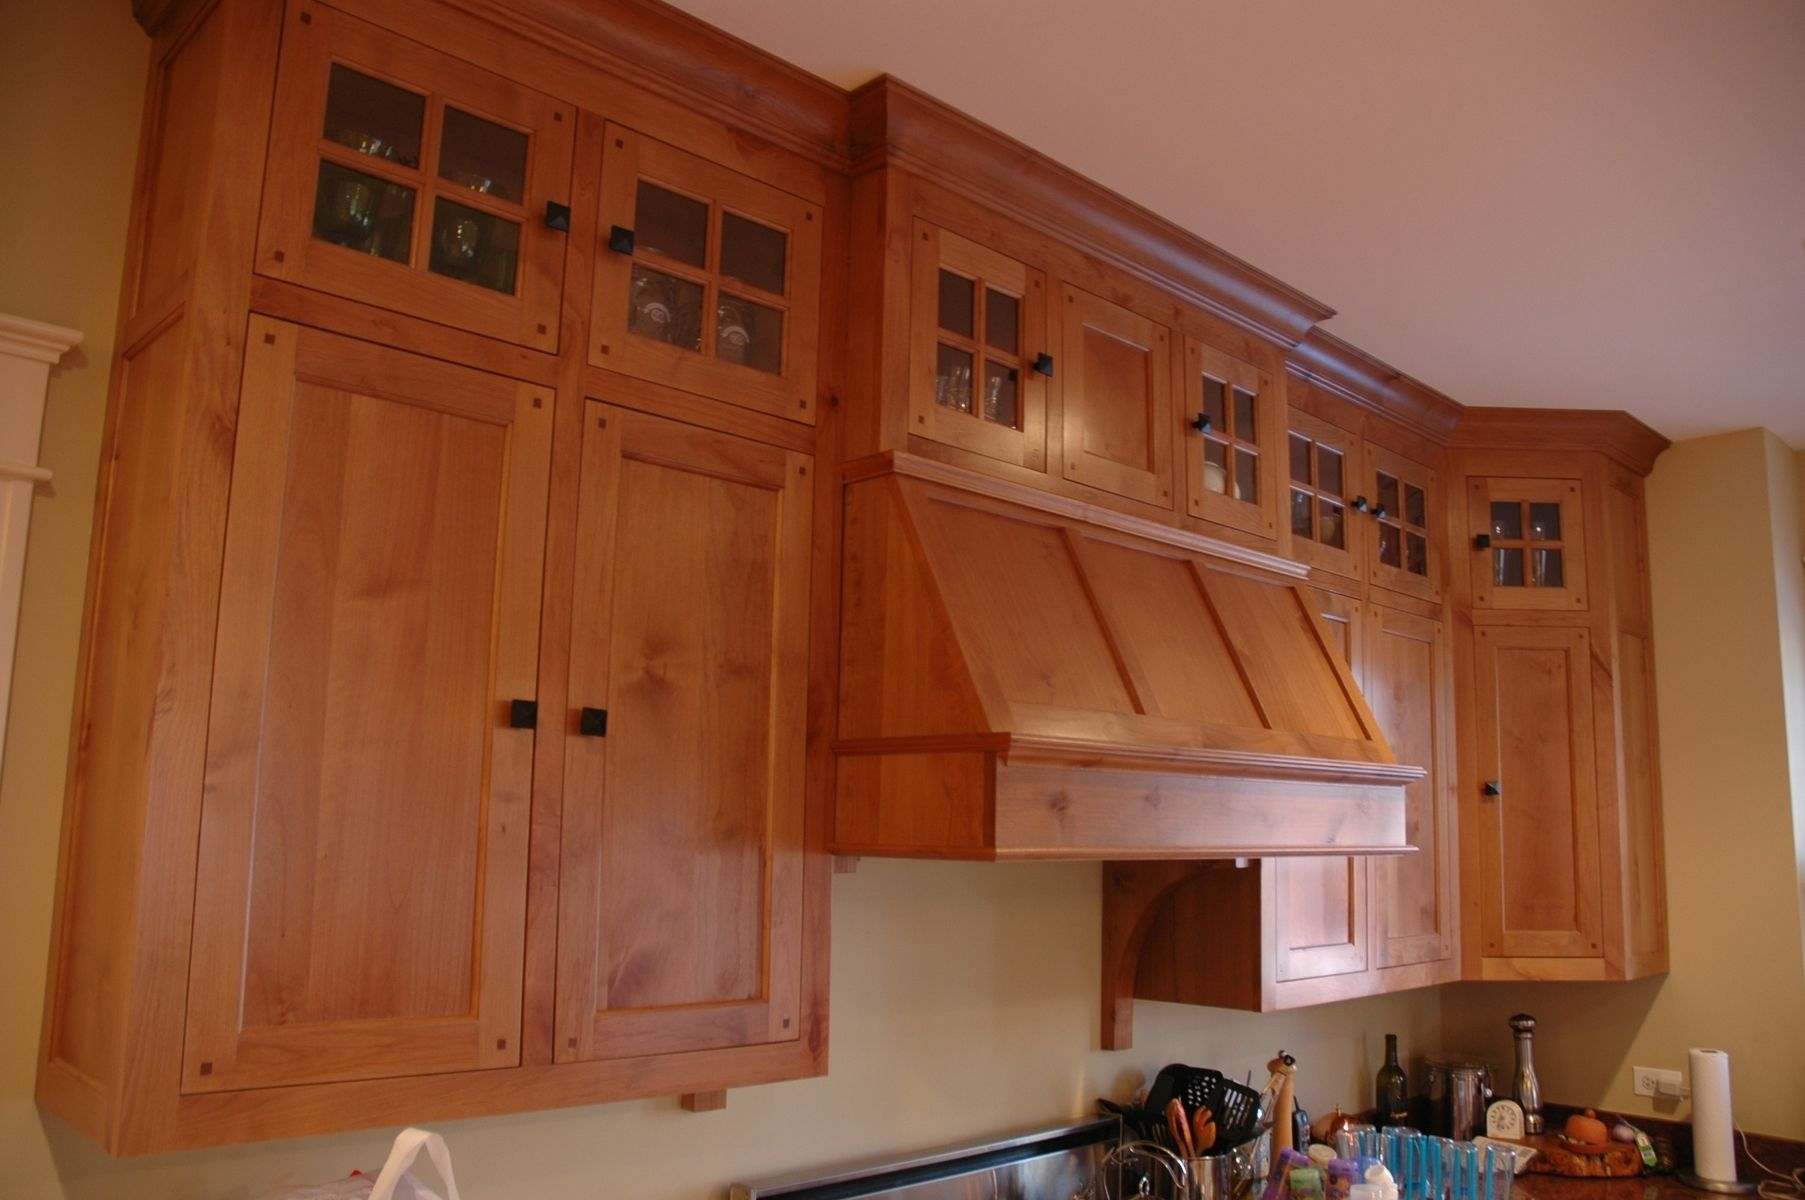 Arts And Crafts Range Hoods Google Search Mission Style Kitchen Cabinets Kitchen Craft Cabinets Mission Style Kitchens